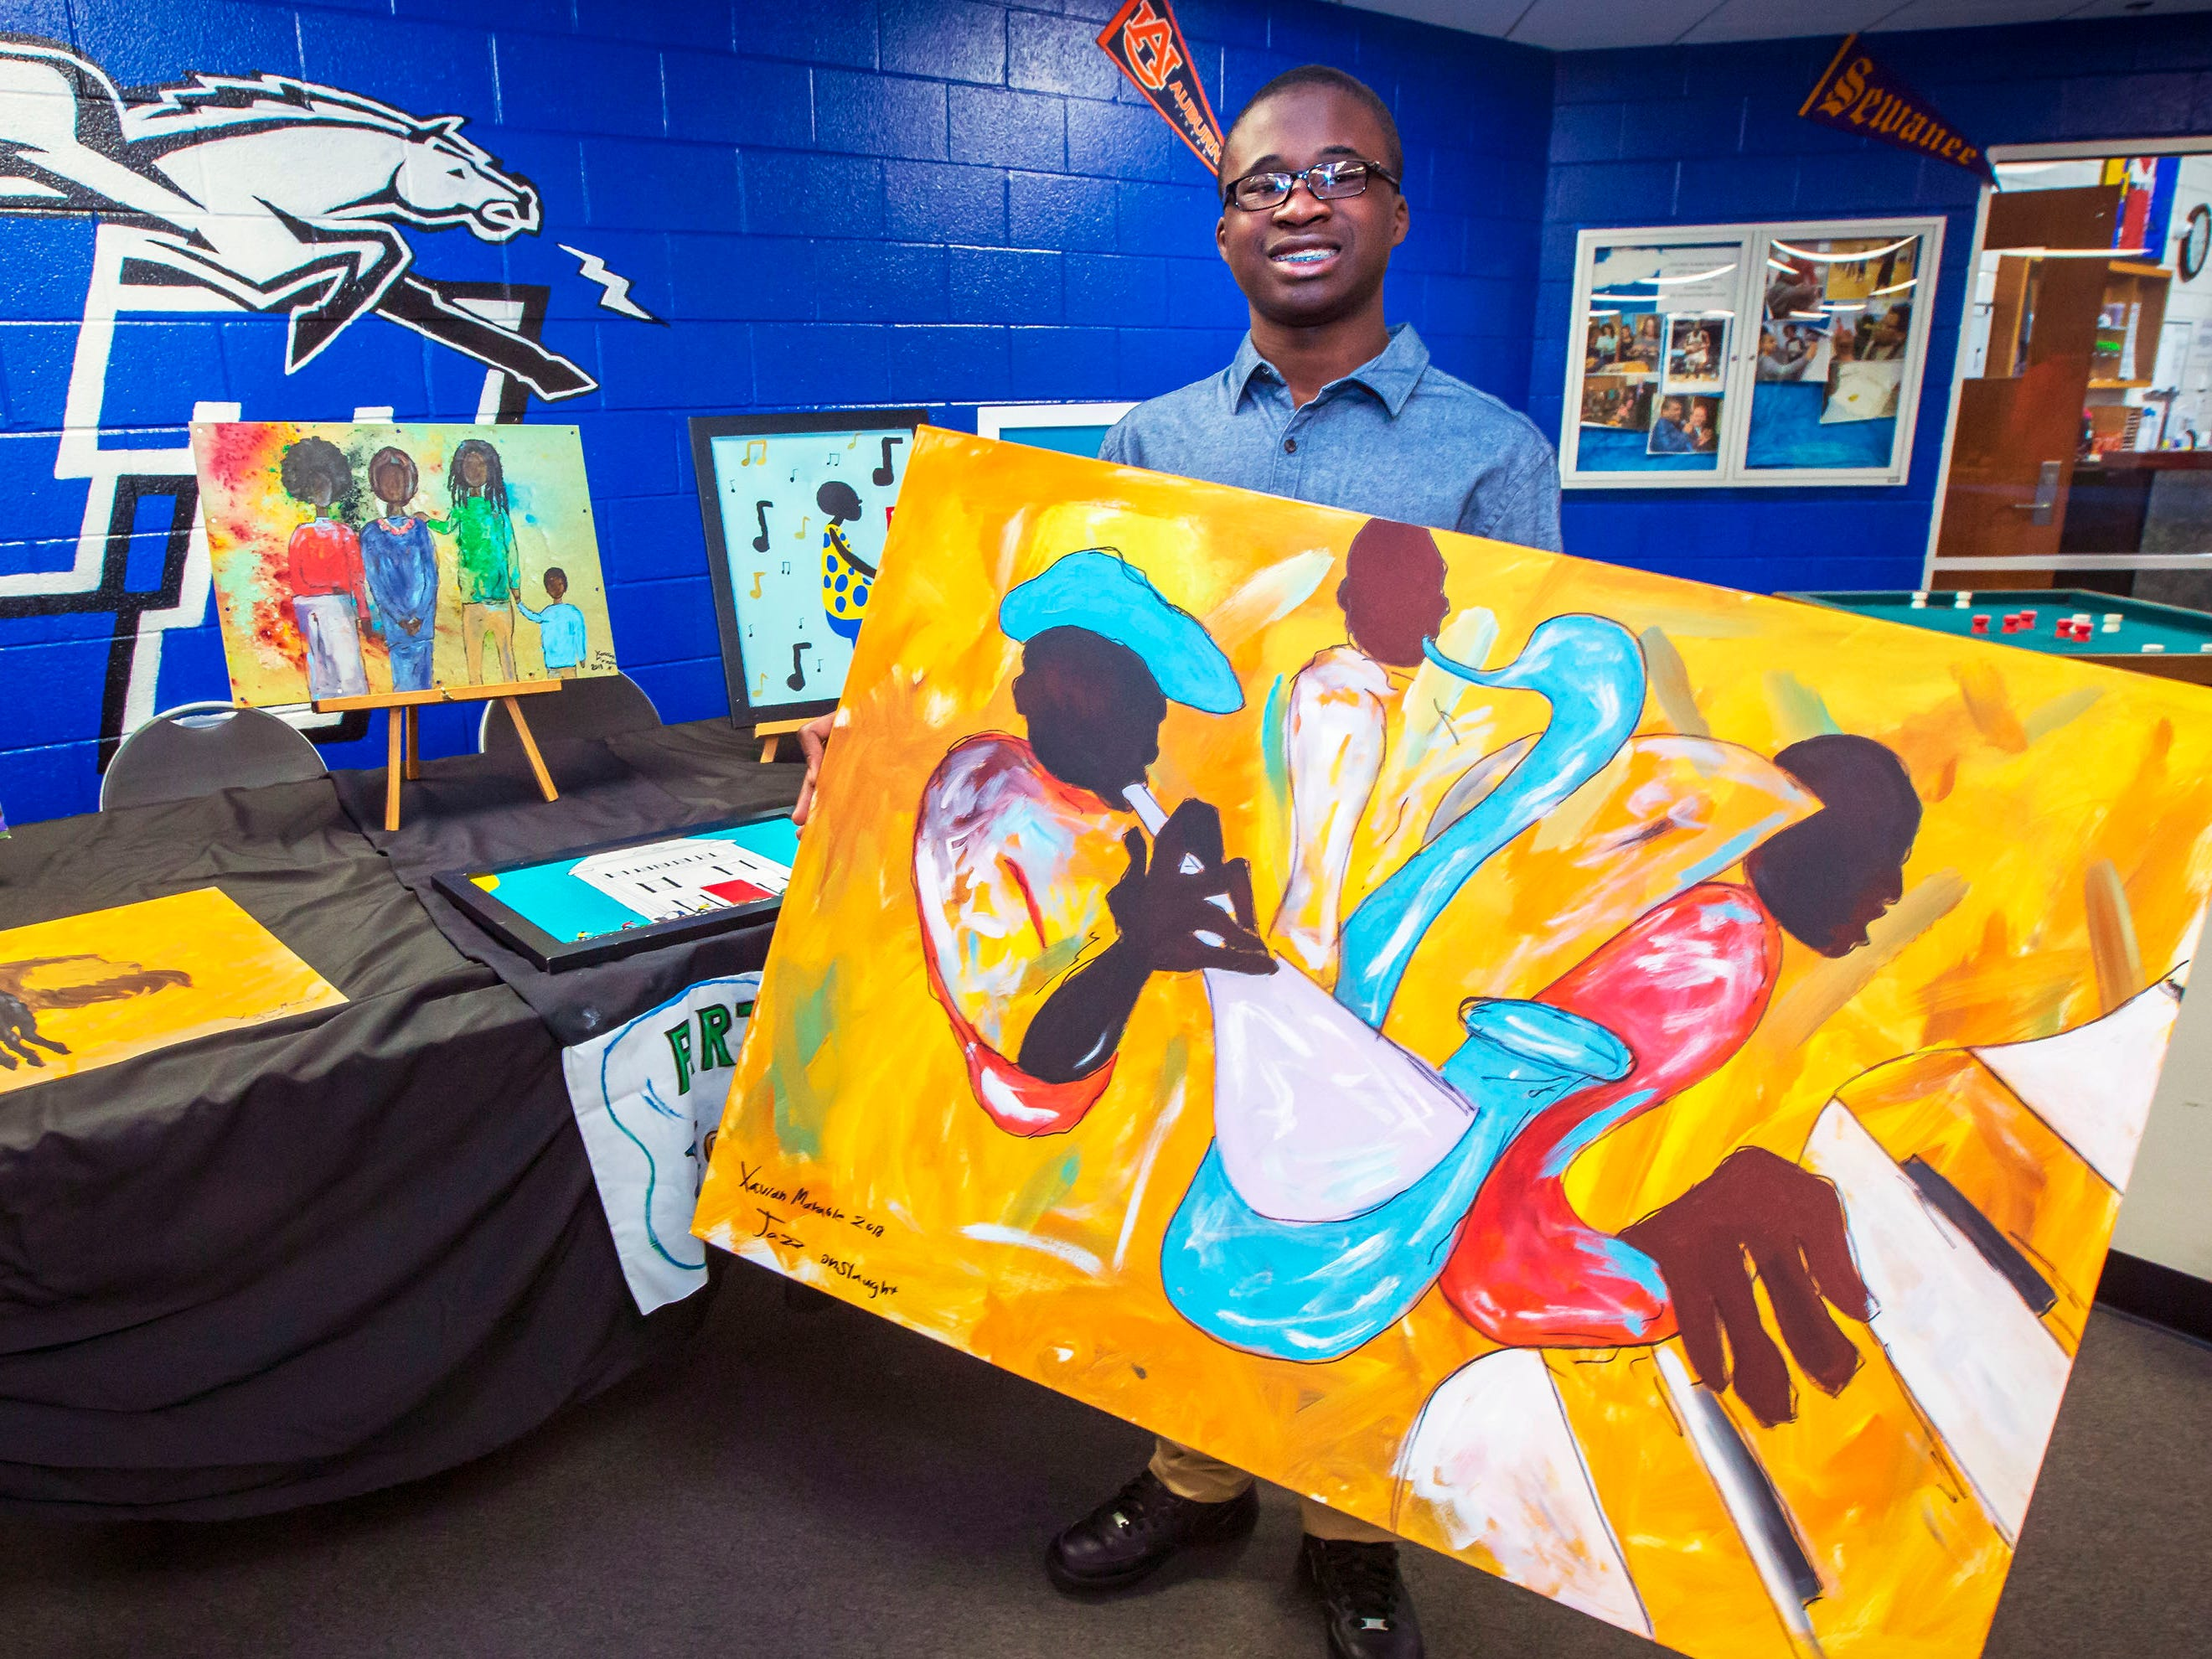 Xavian Marable holds one of his paintings at his booth at the African-American Cultural Celebration held at Patterson Park Community Center.